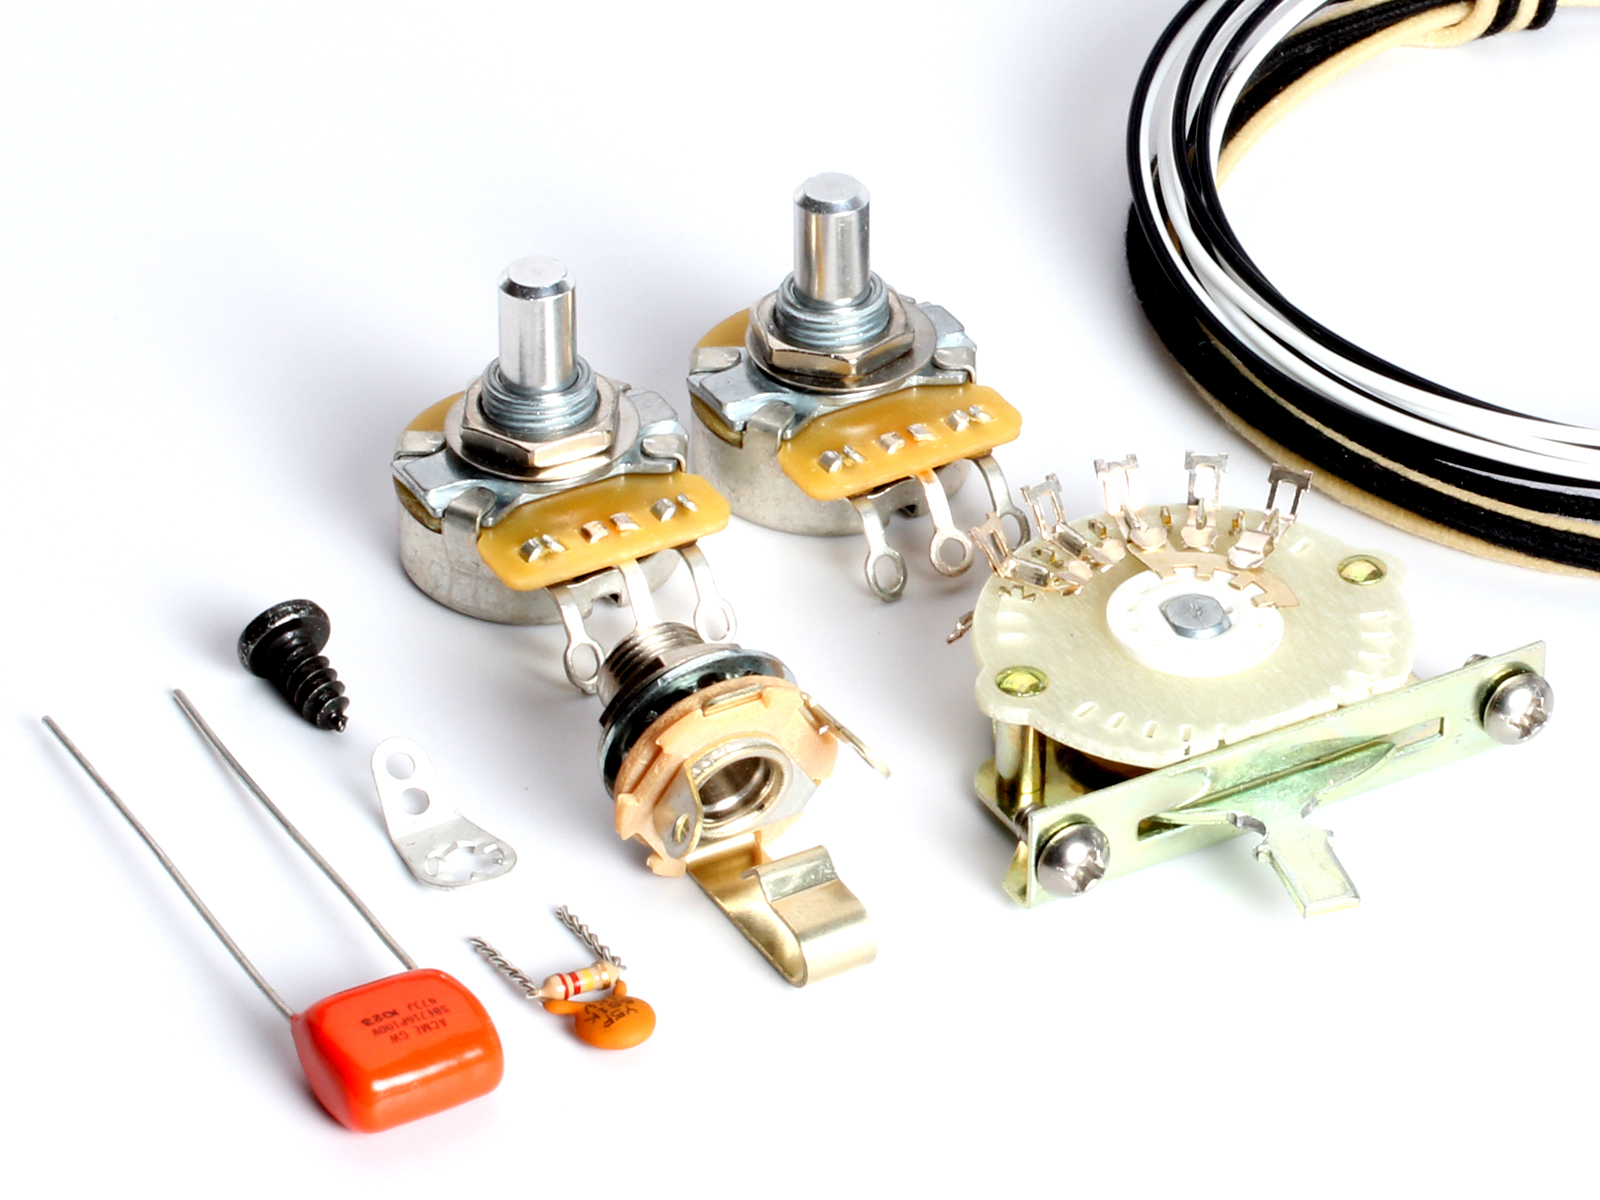 Tele Guitar Wiring Electrical Diagram Premier Toneshapers Kit Telecaster Ss2 4 Way Fender Ebay Mag